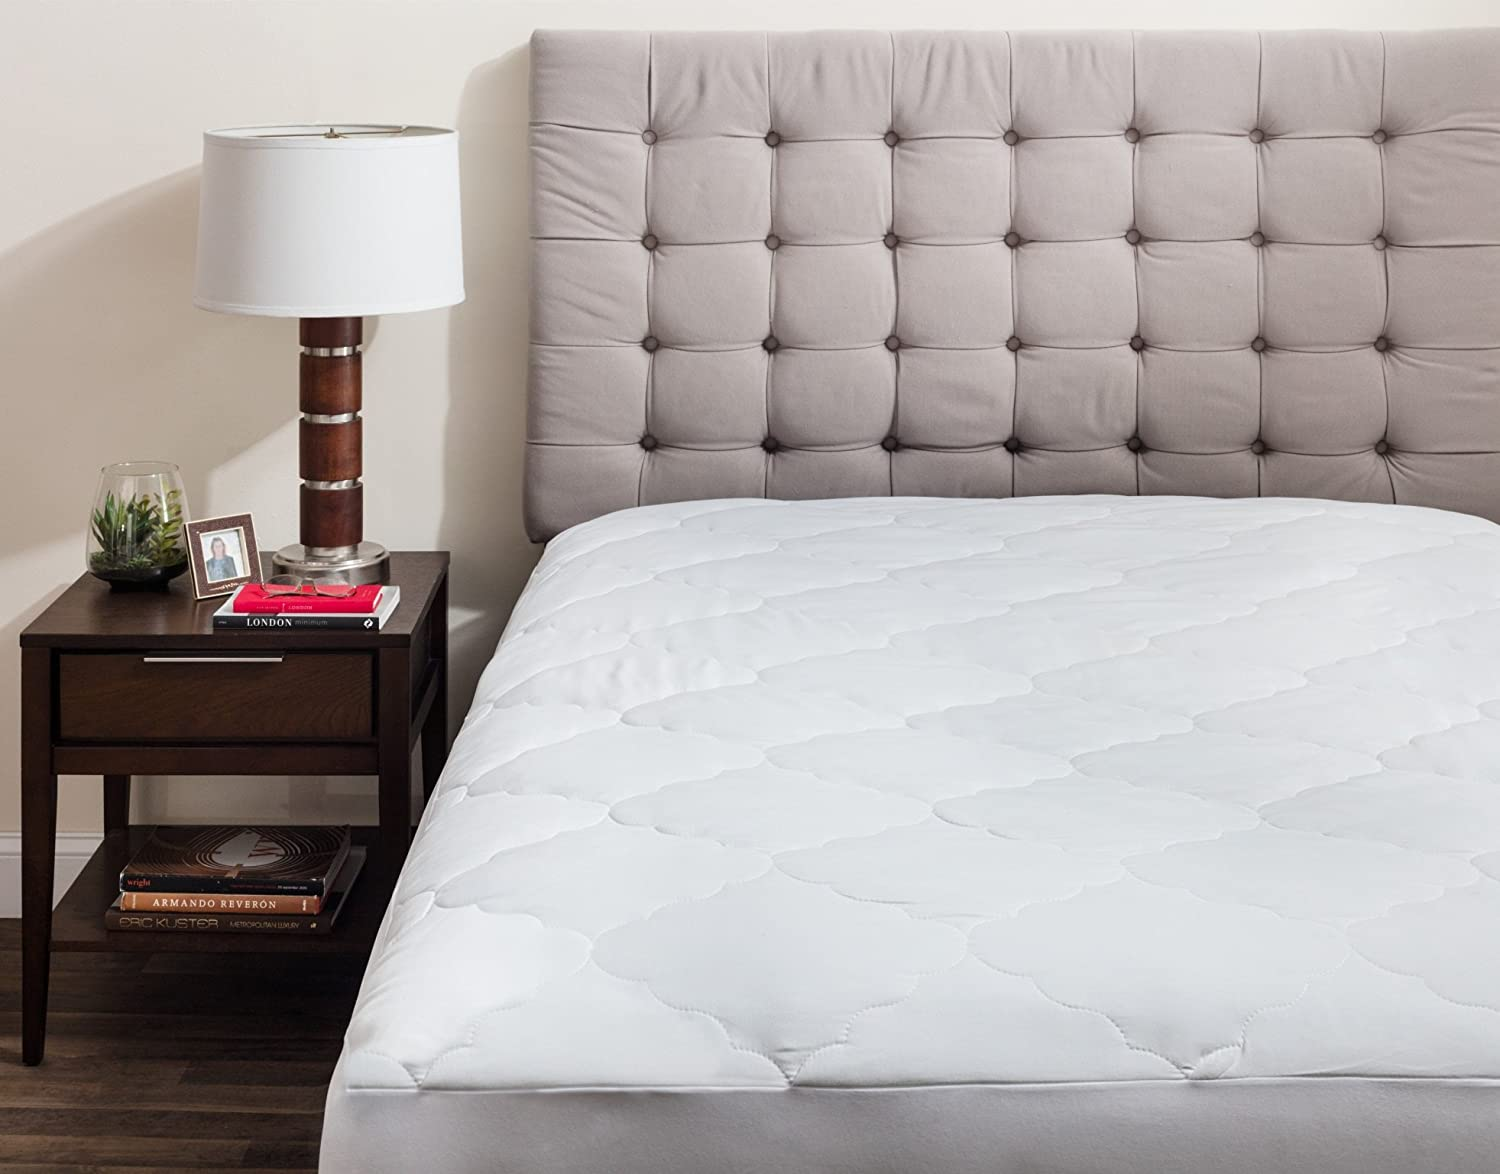 MASTERTEX - Down Alternative Mattress Pad - Fitted Style Mattress Topper